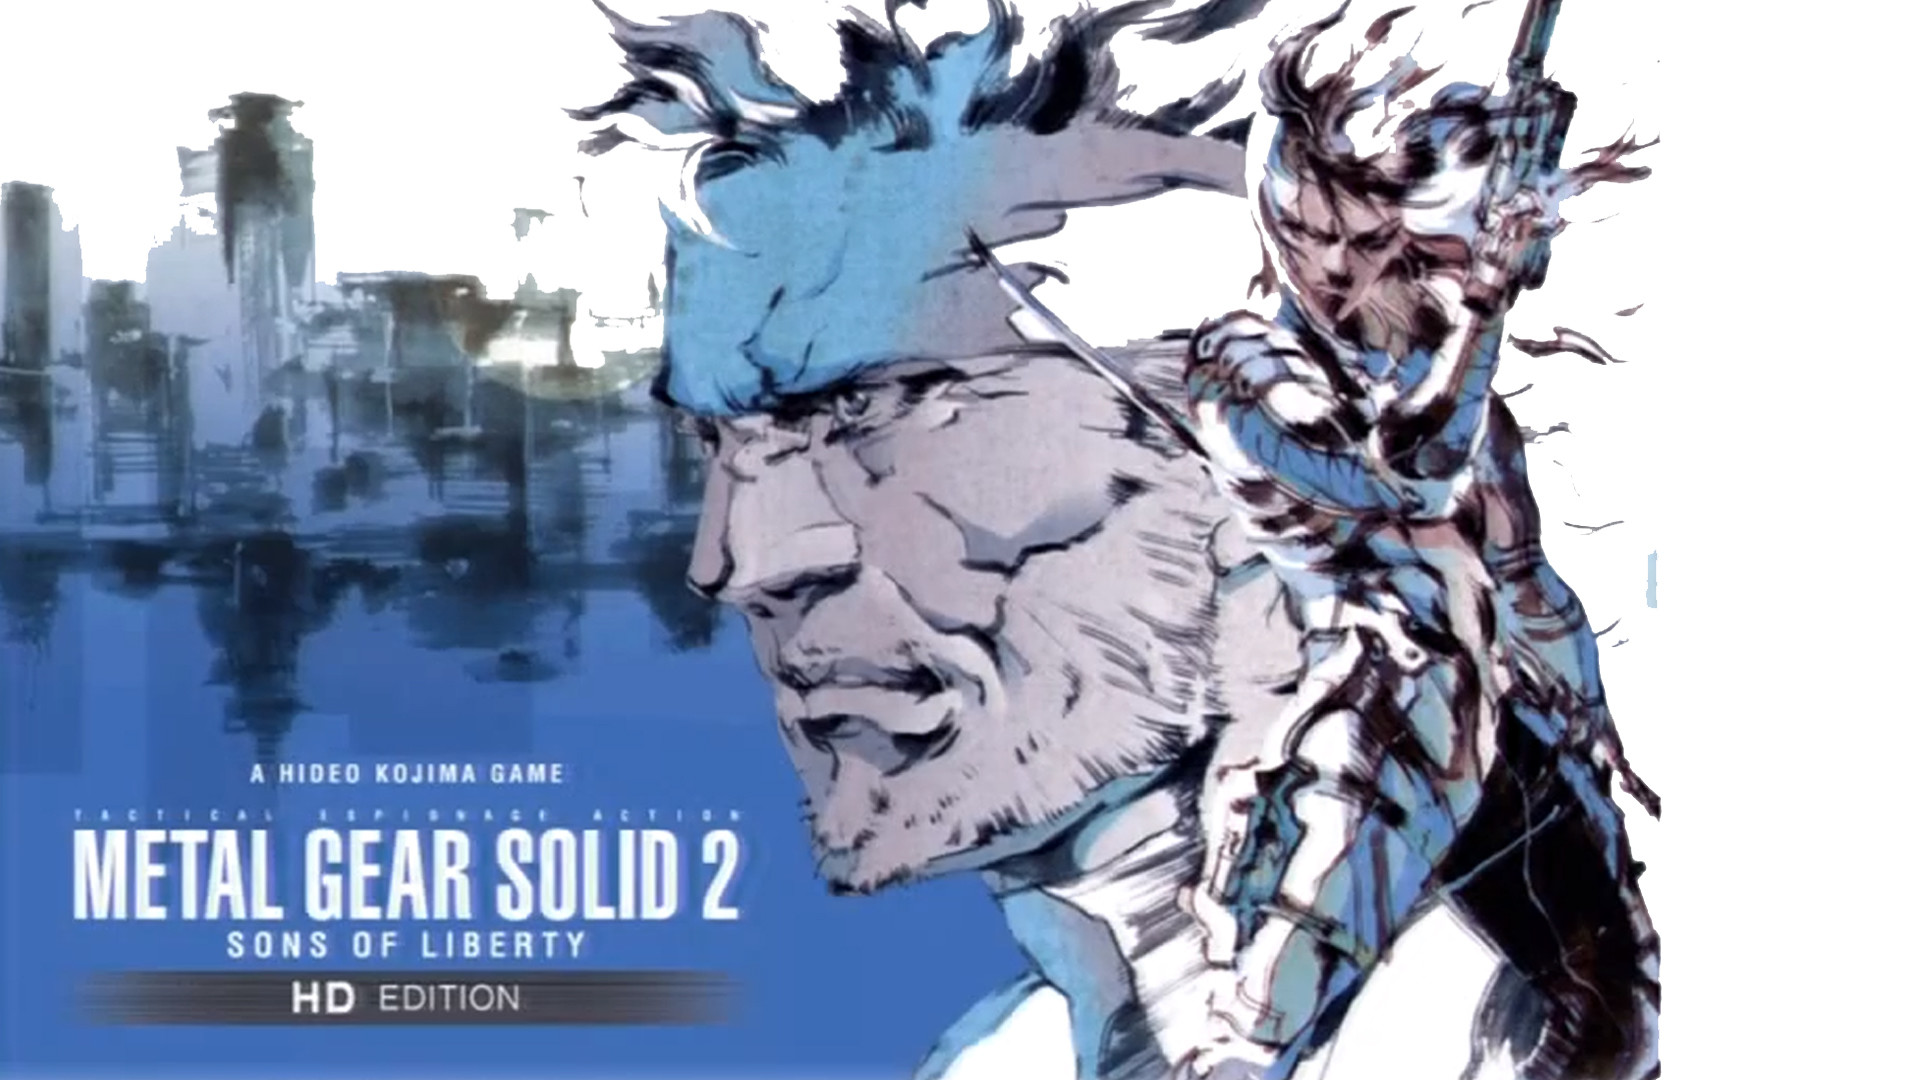 Metal Gear Solid 2 HD EDITION (Unreleased) by Outer-Heaven1974 on .